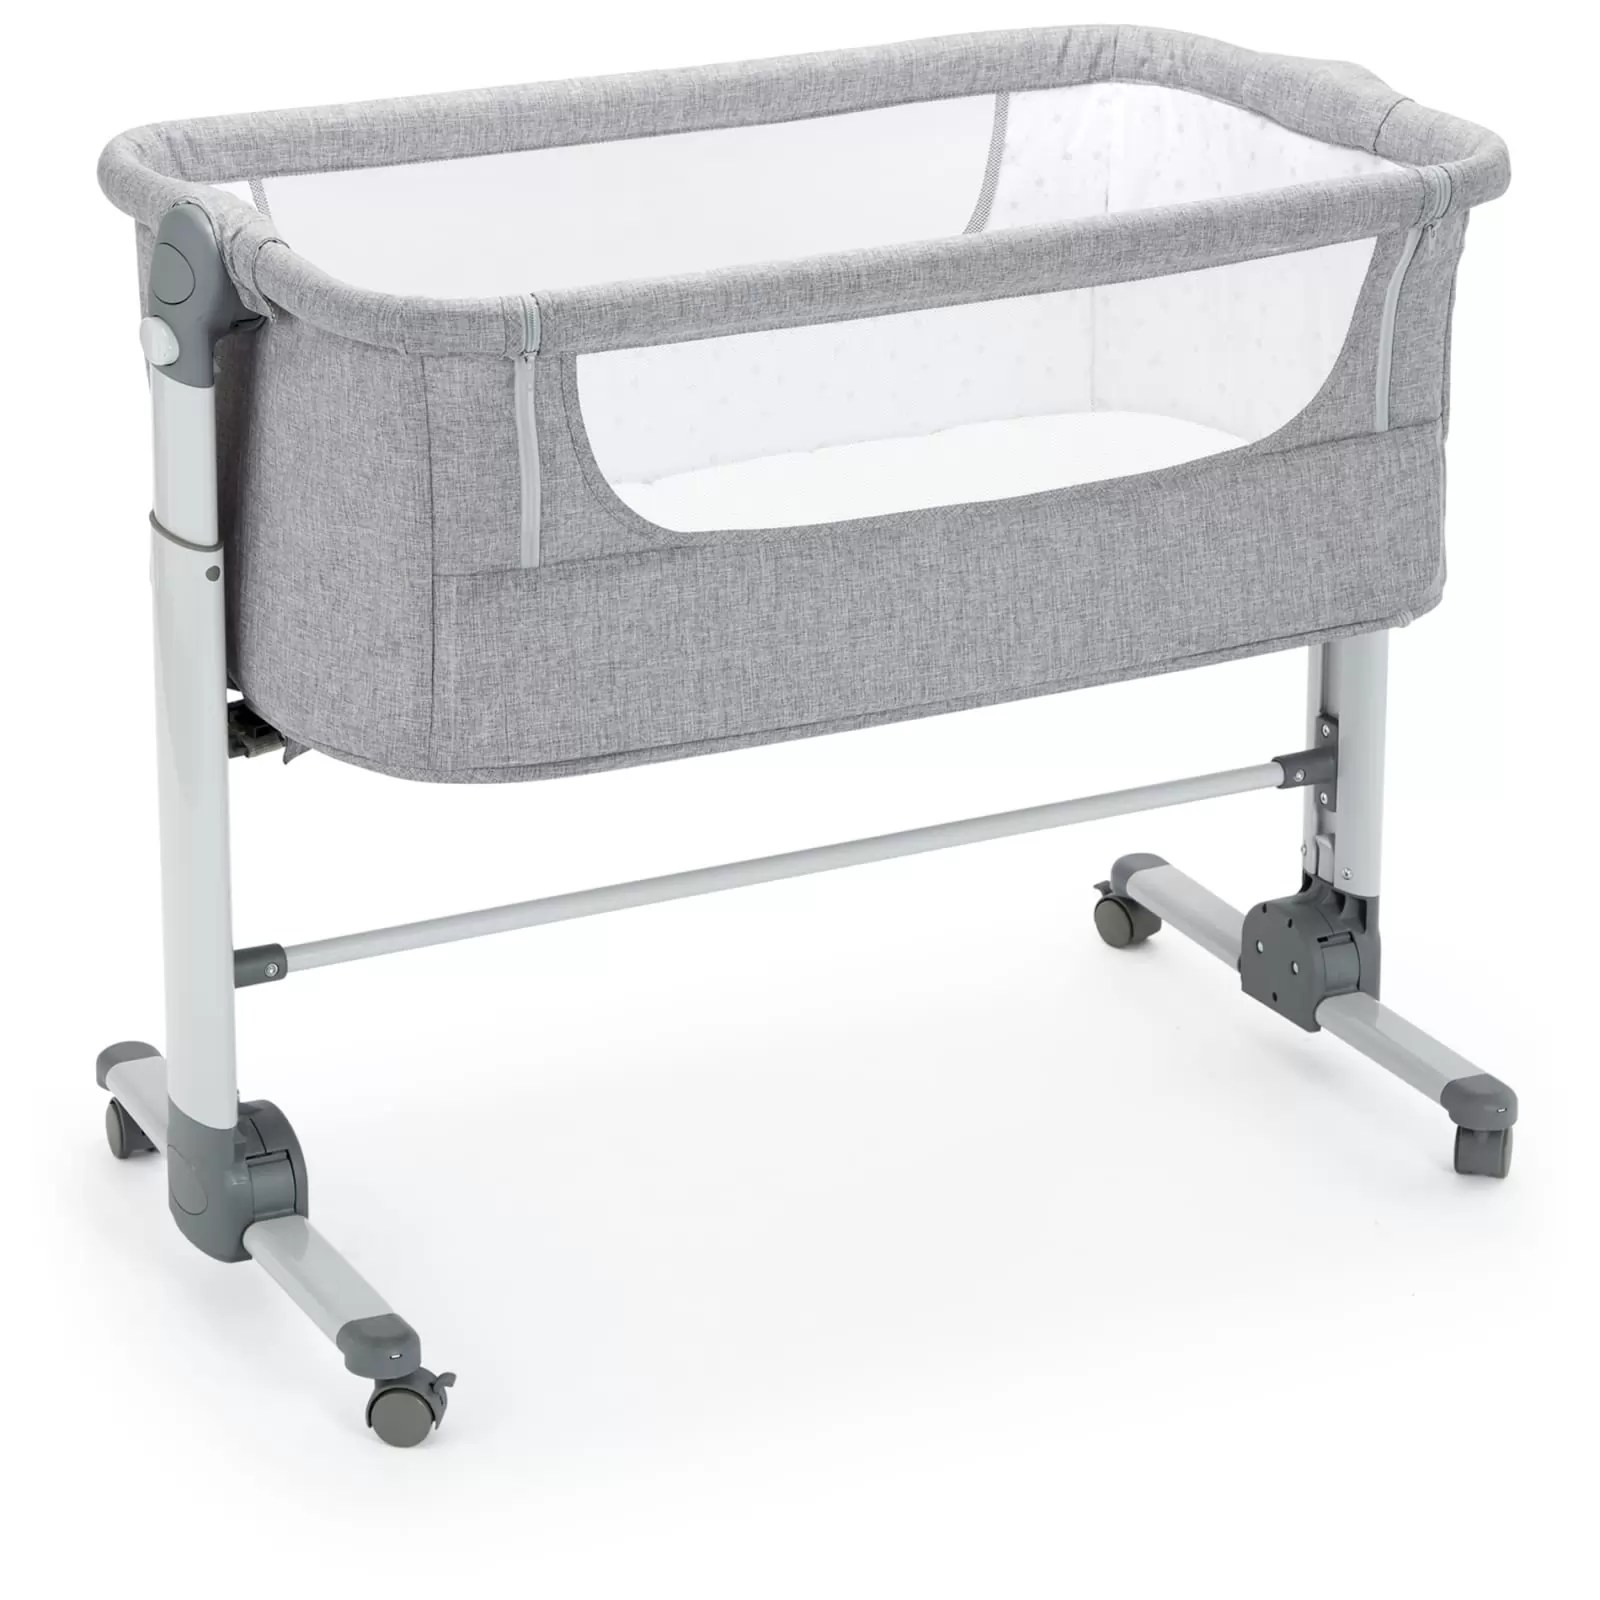 Baby Cots That Attach To Beds Be By Me Bedside Crib